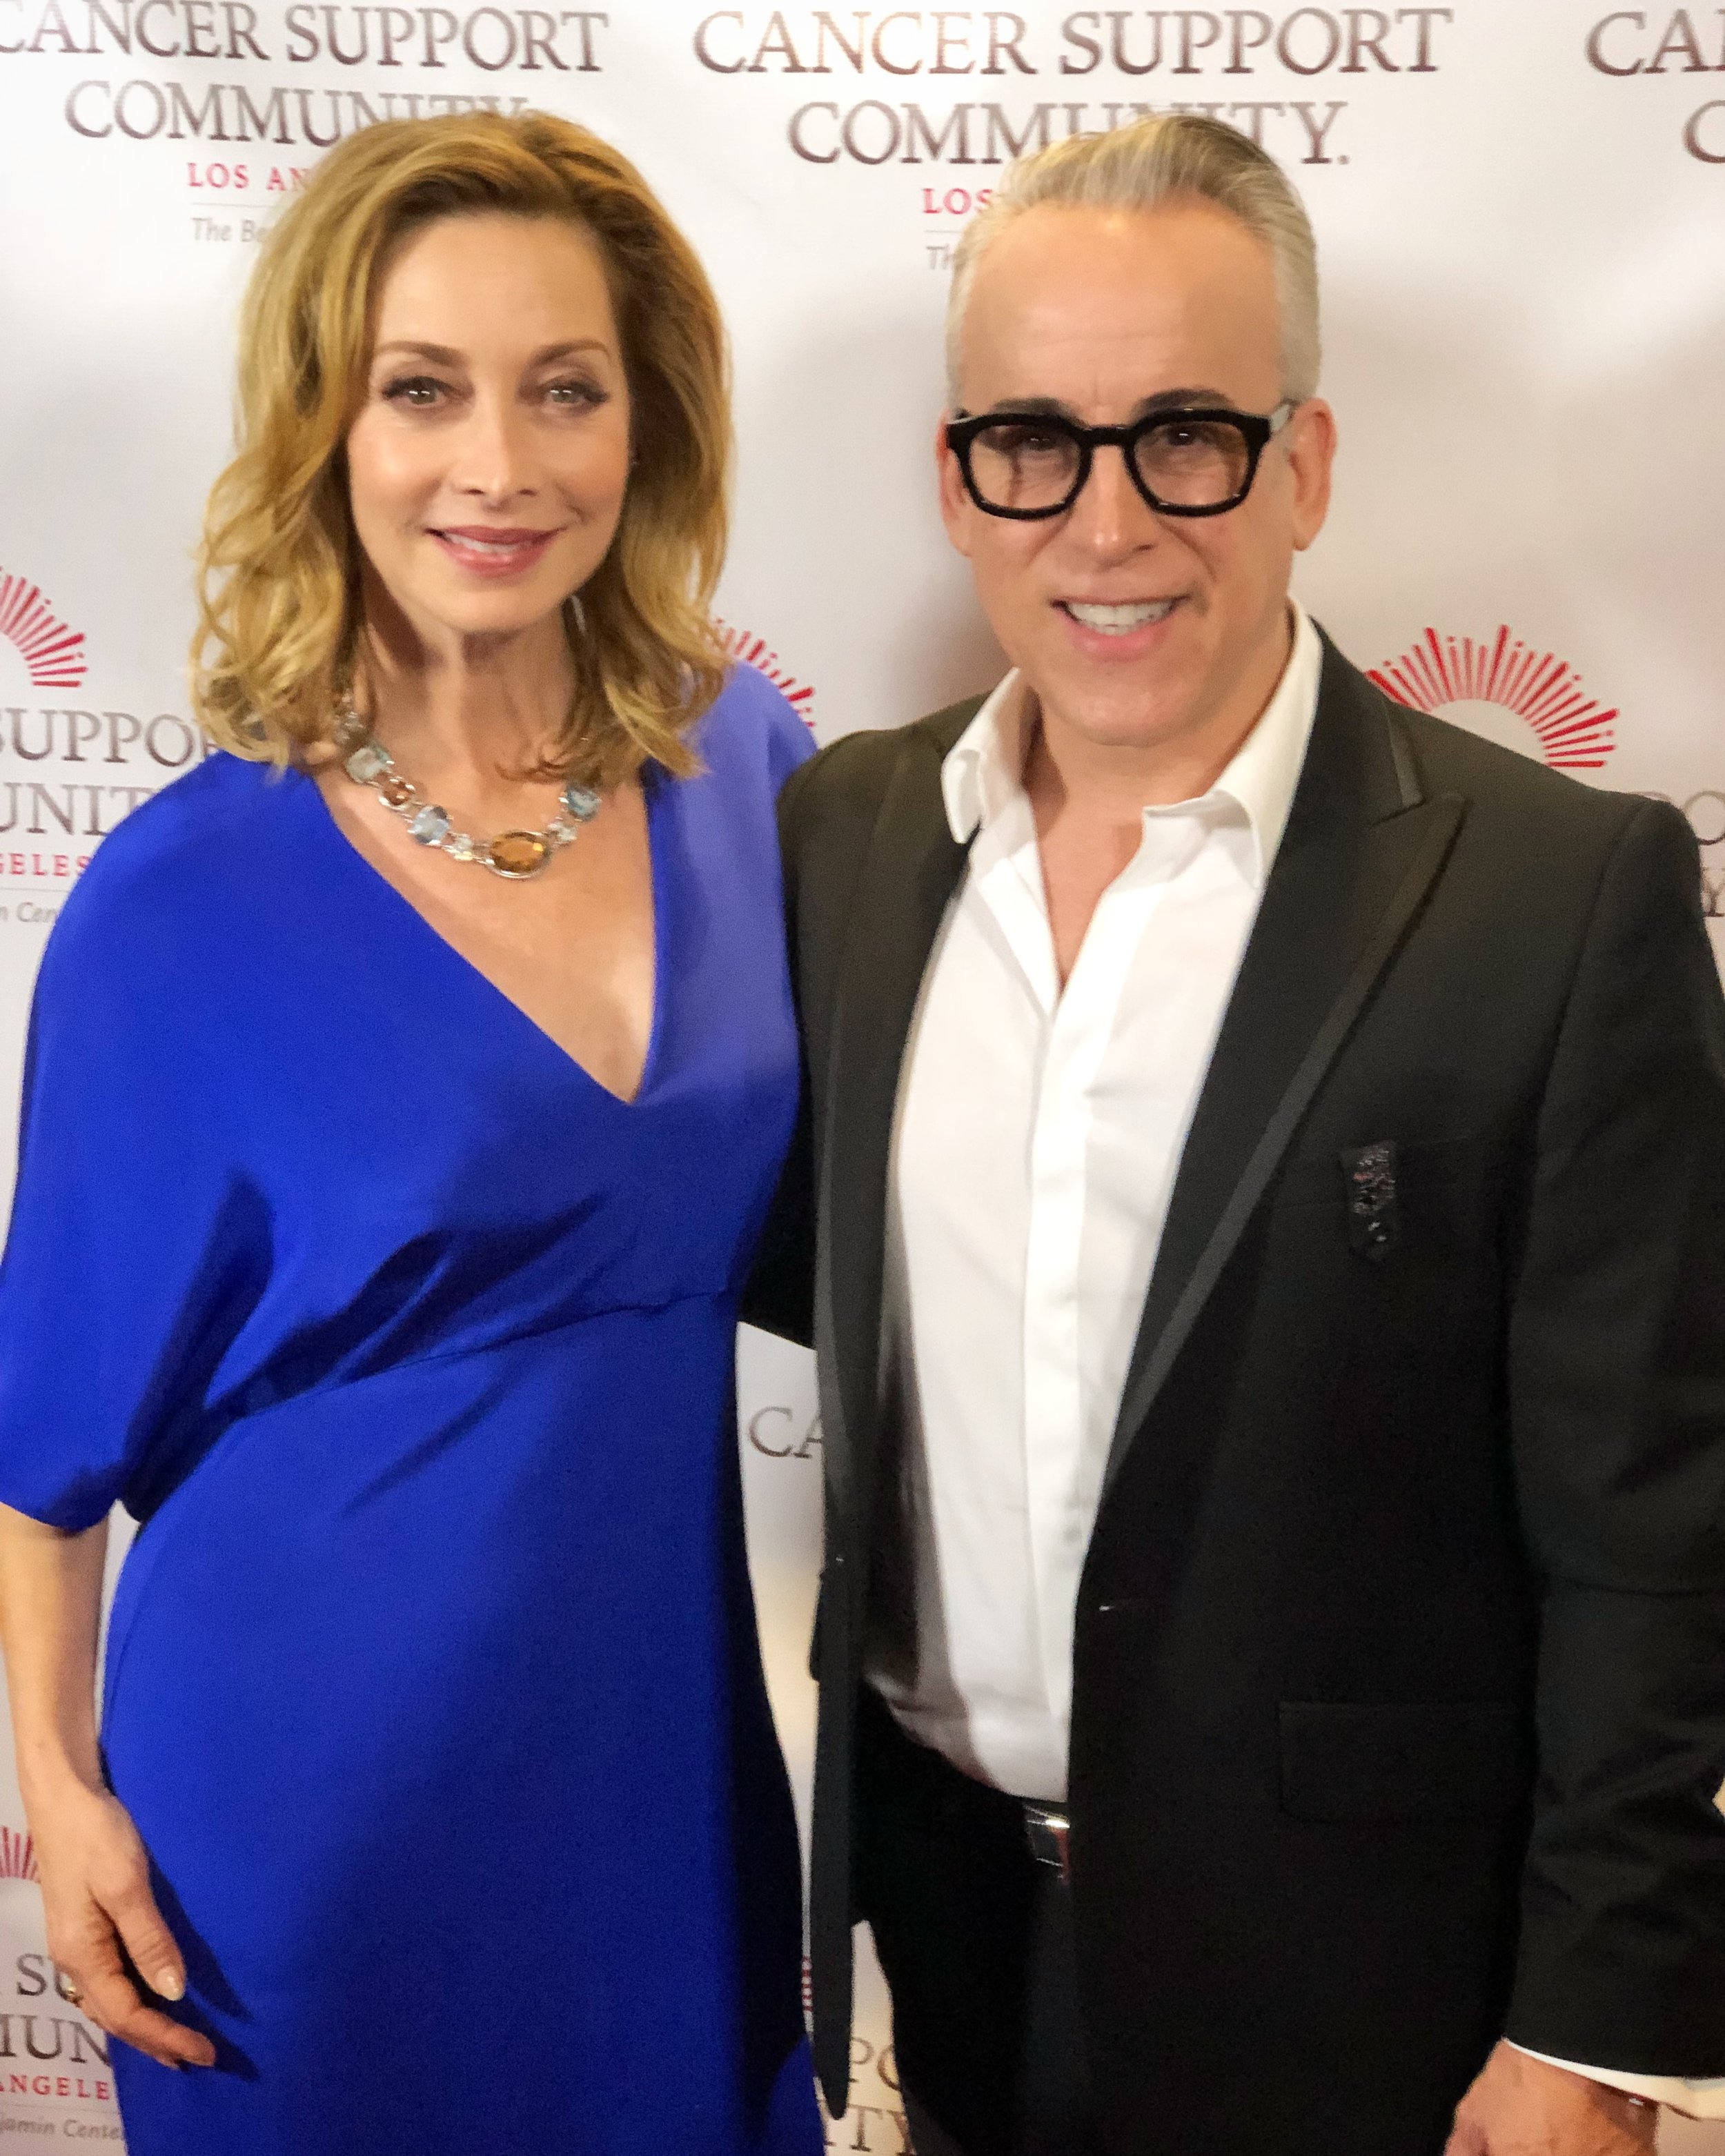 gilda awards honoree Sharon lawrence